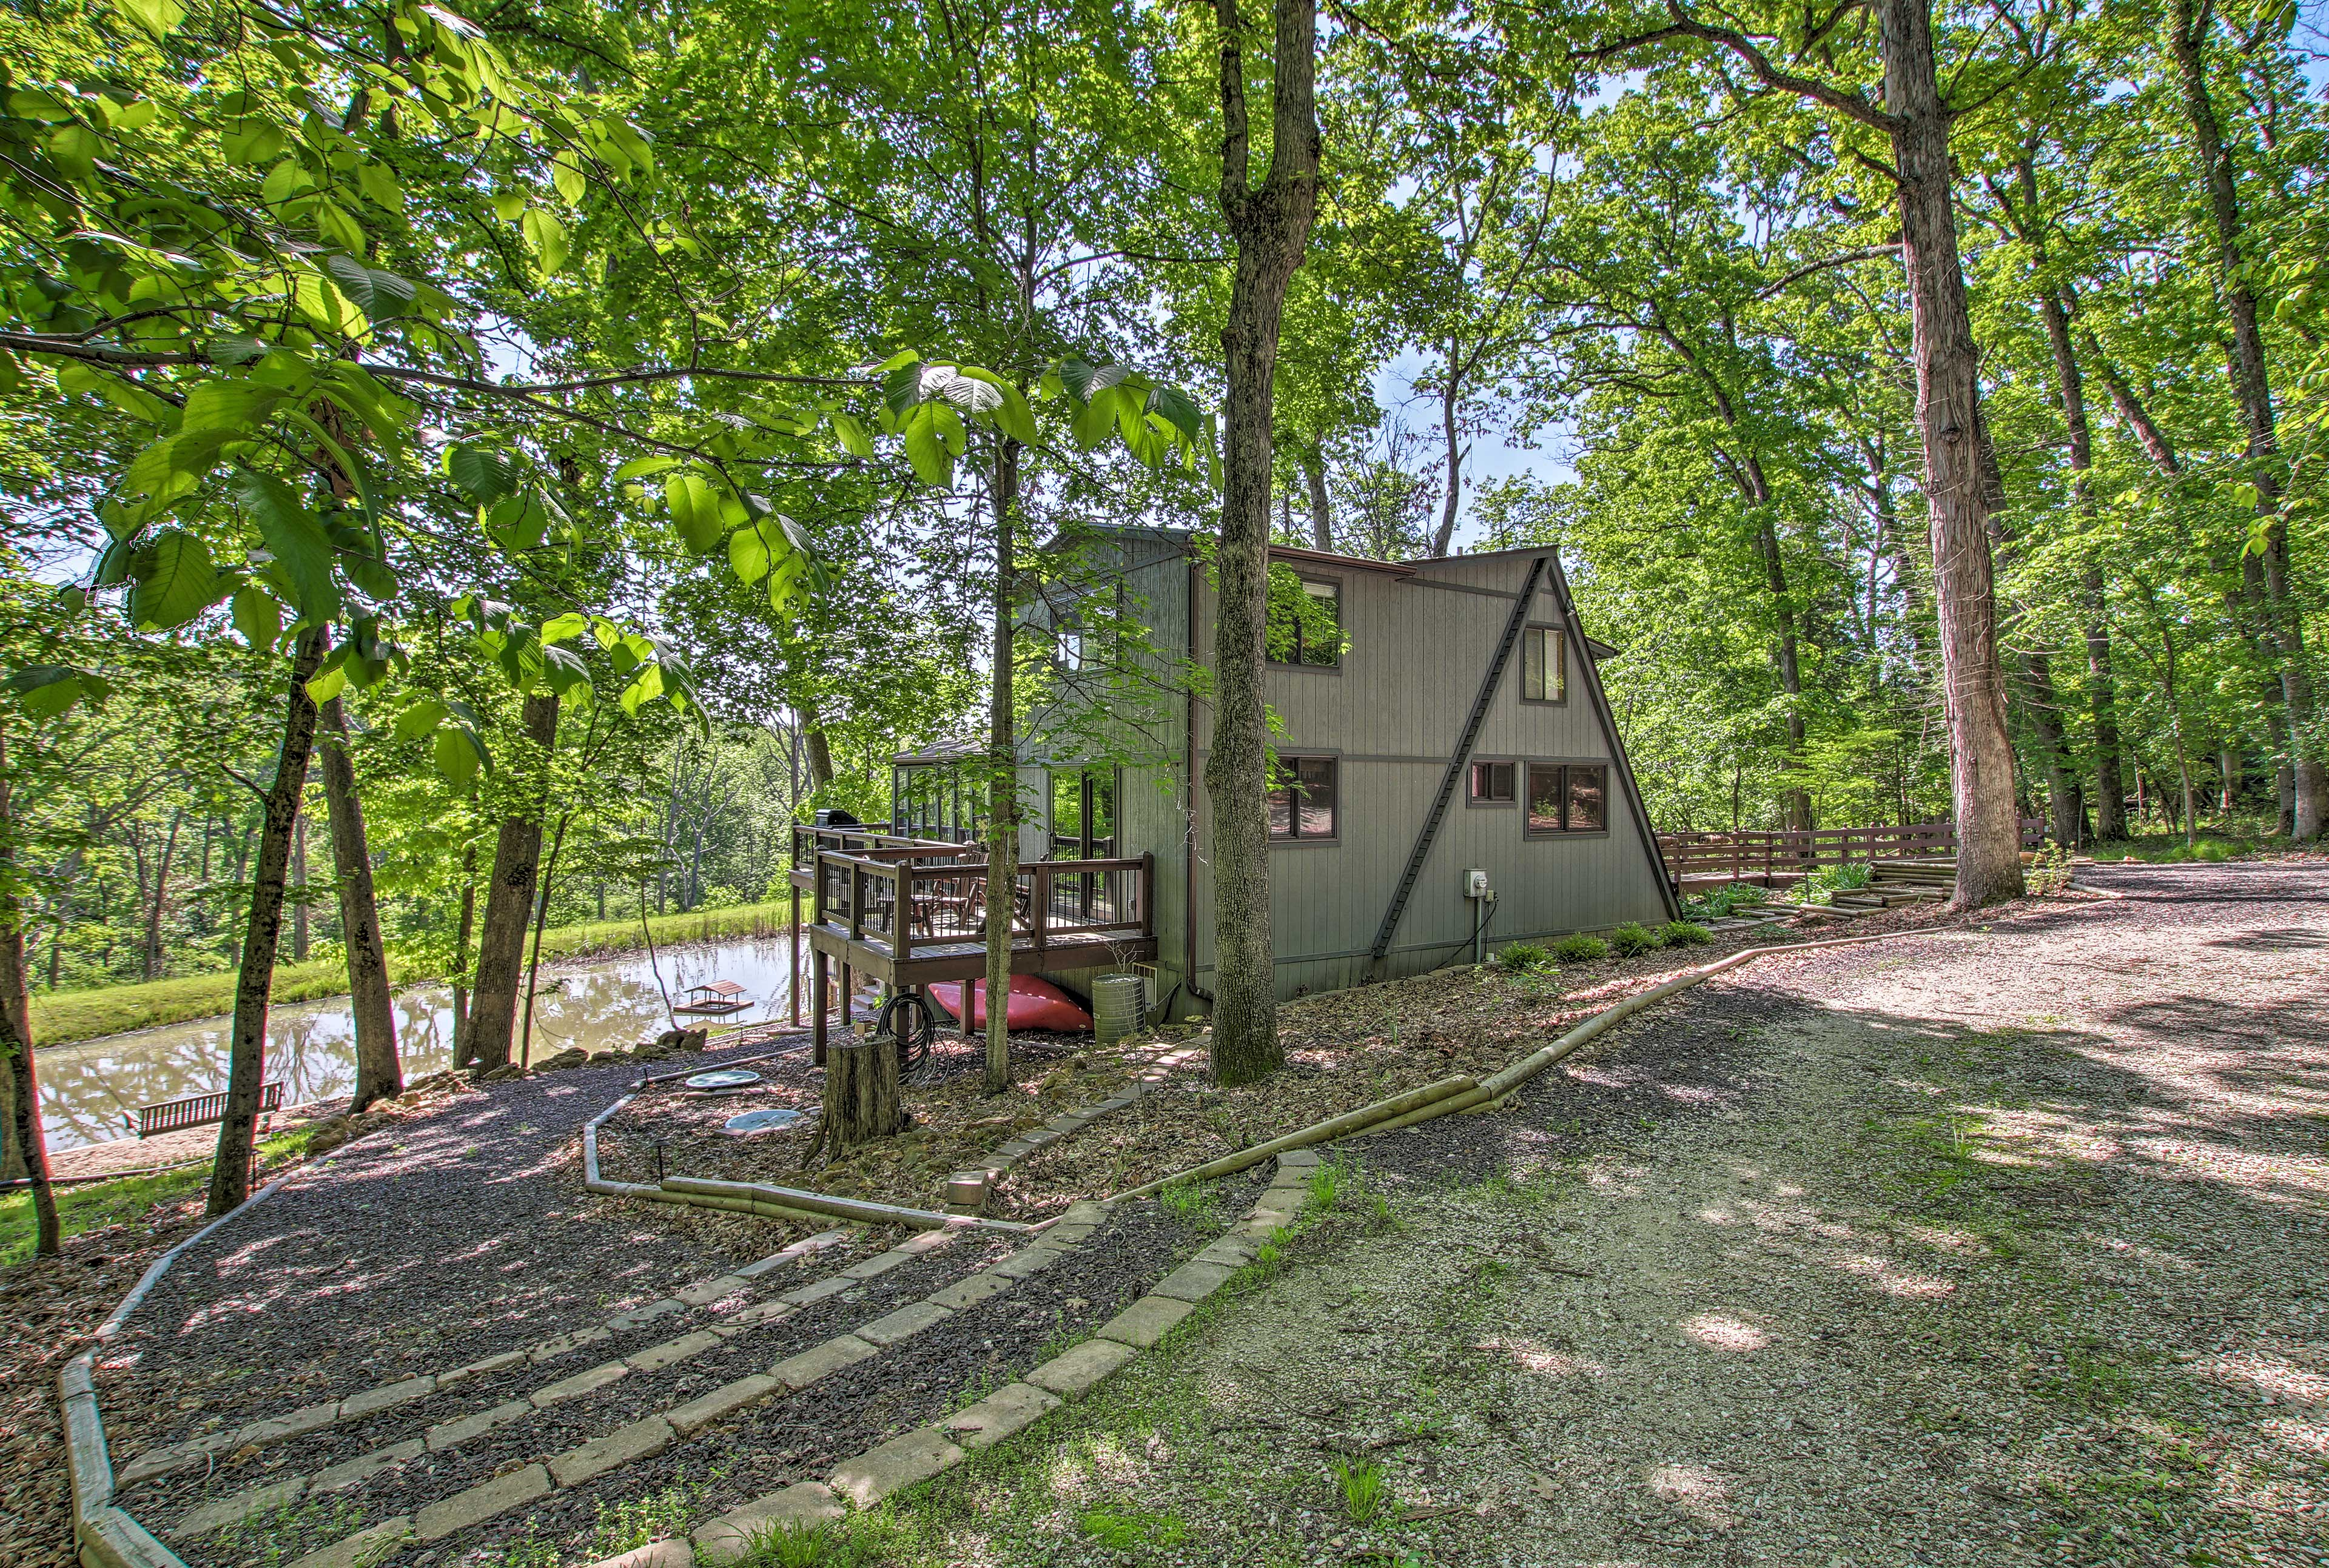 Make yourself at home in this unbeatable Innsbrook cabin!